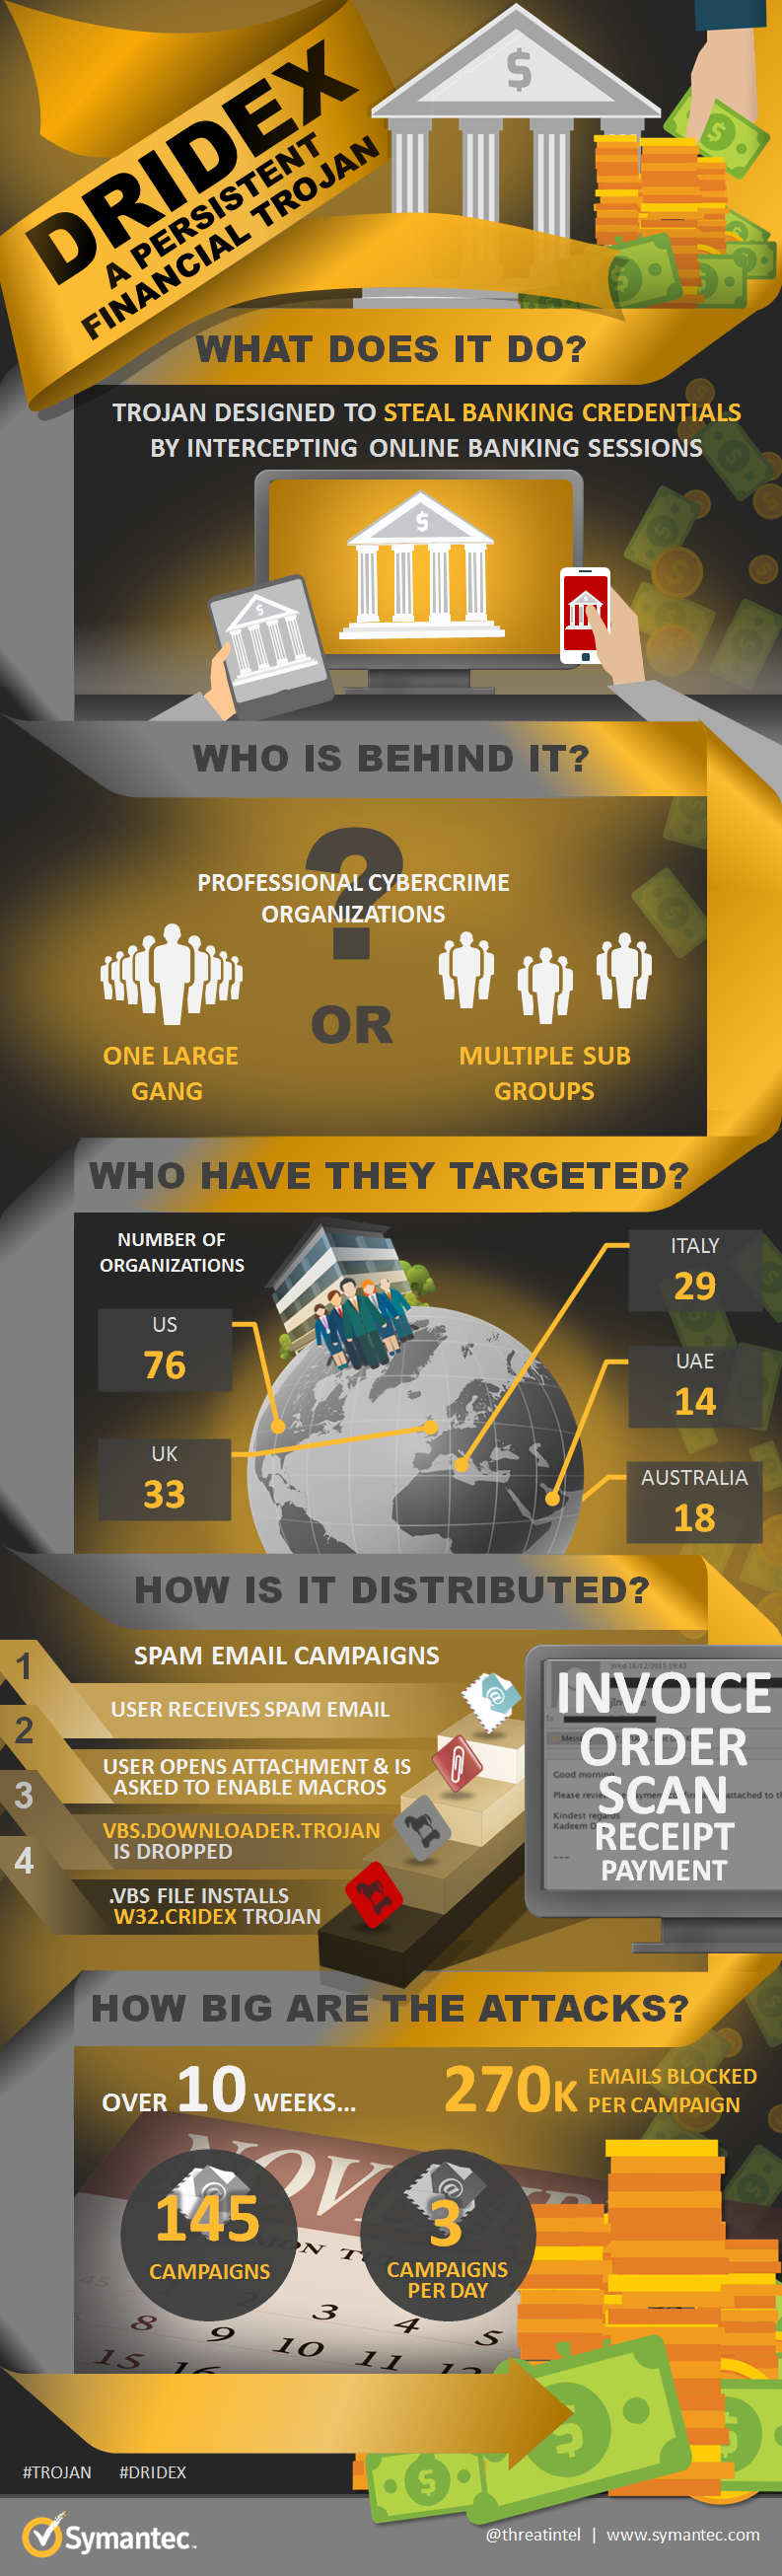 Symantec have come up with this graphic to detail the true scale of this issue! See the original image on Symantec's website:http://images.mktgassets.symantec.com/Web/Symantec/%7B7924abaa-d3c7-4ead-b920-0044f56e1757%7D_Dridex-all-in-one-infographic.png